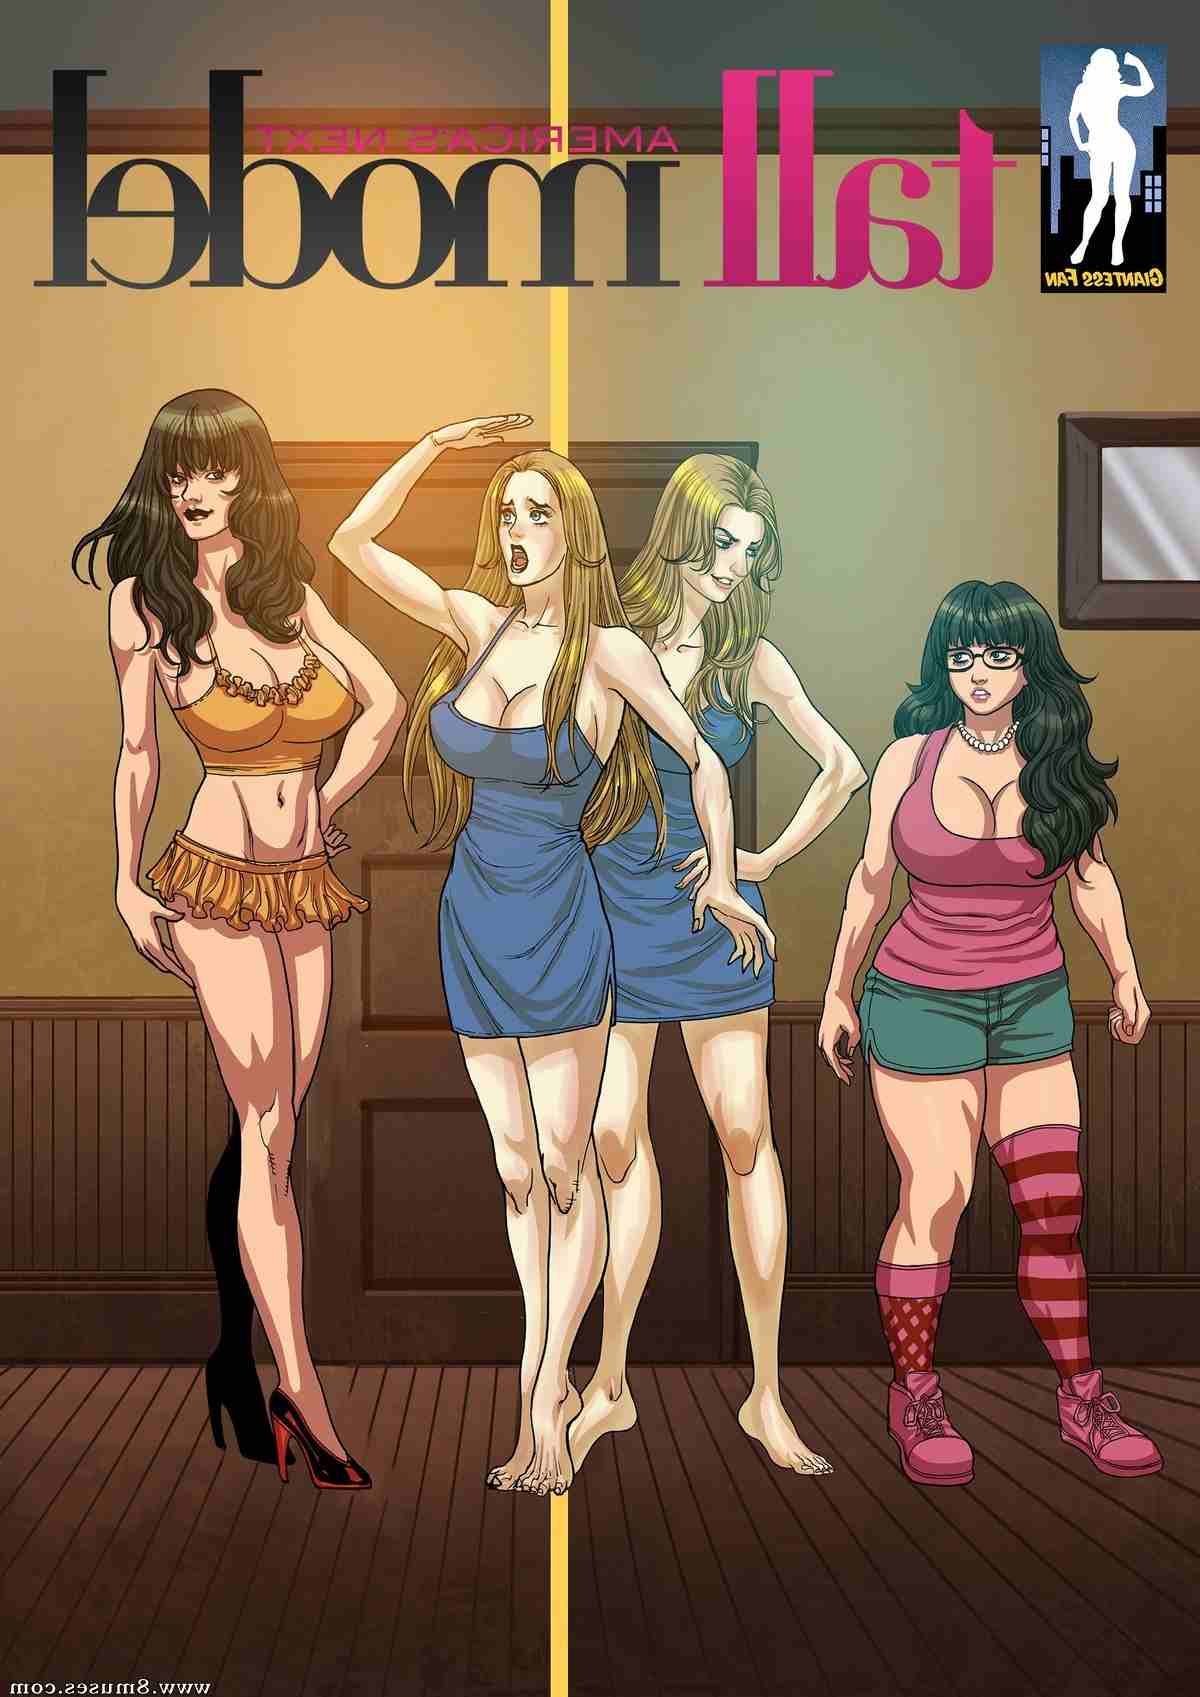 Giantess-Fan-Comics/Americas-Next-Tall-Model Americas_Next_Tall_Model__8muses_-_Sex_and_Porn_Comics.jpg